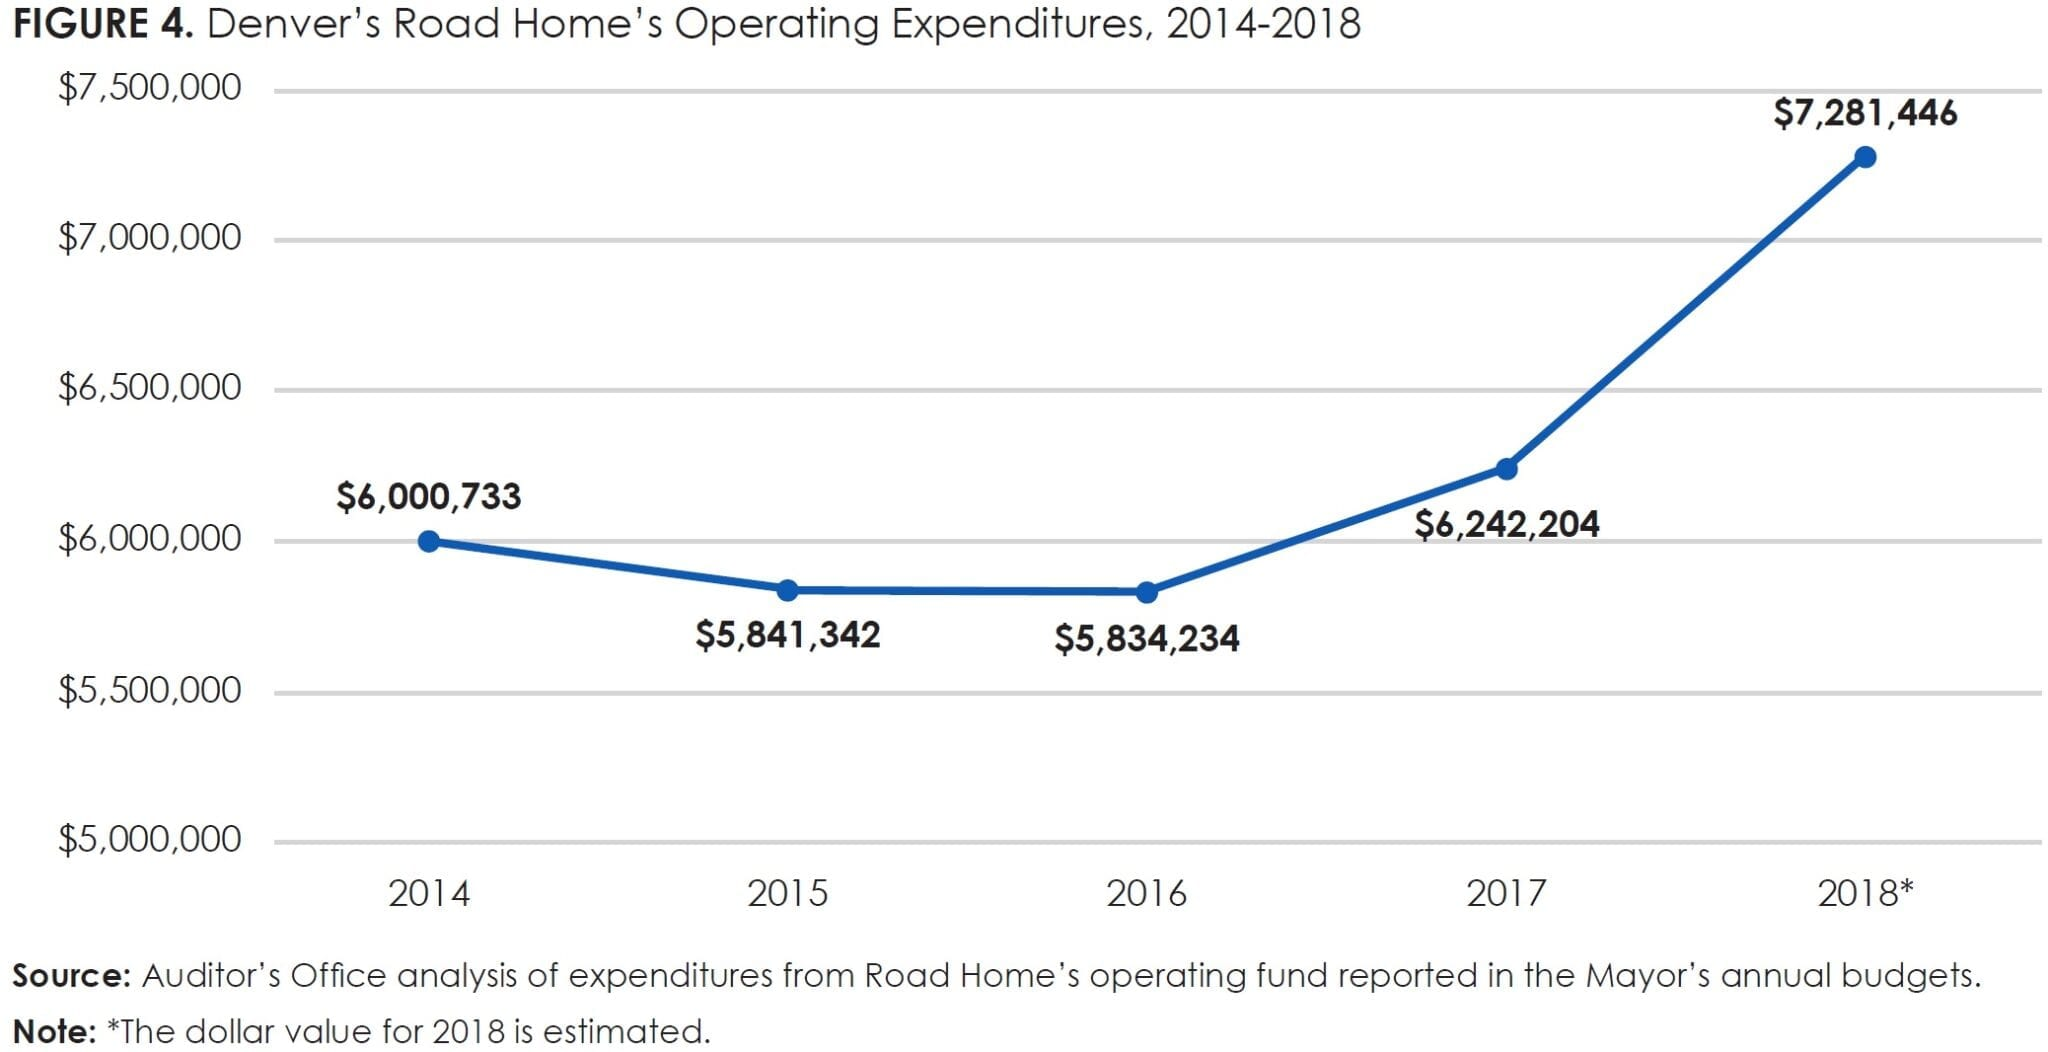 Figure 4_Denver's Road Home's Operating Expenditures, 2014-2018